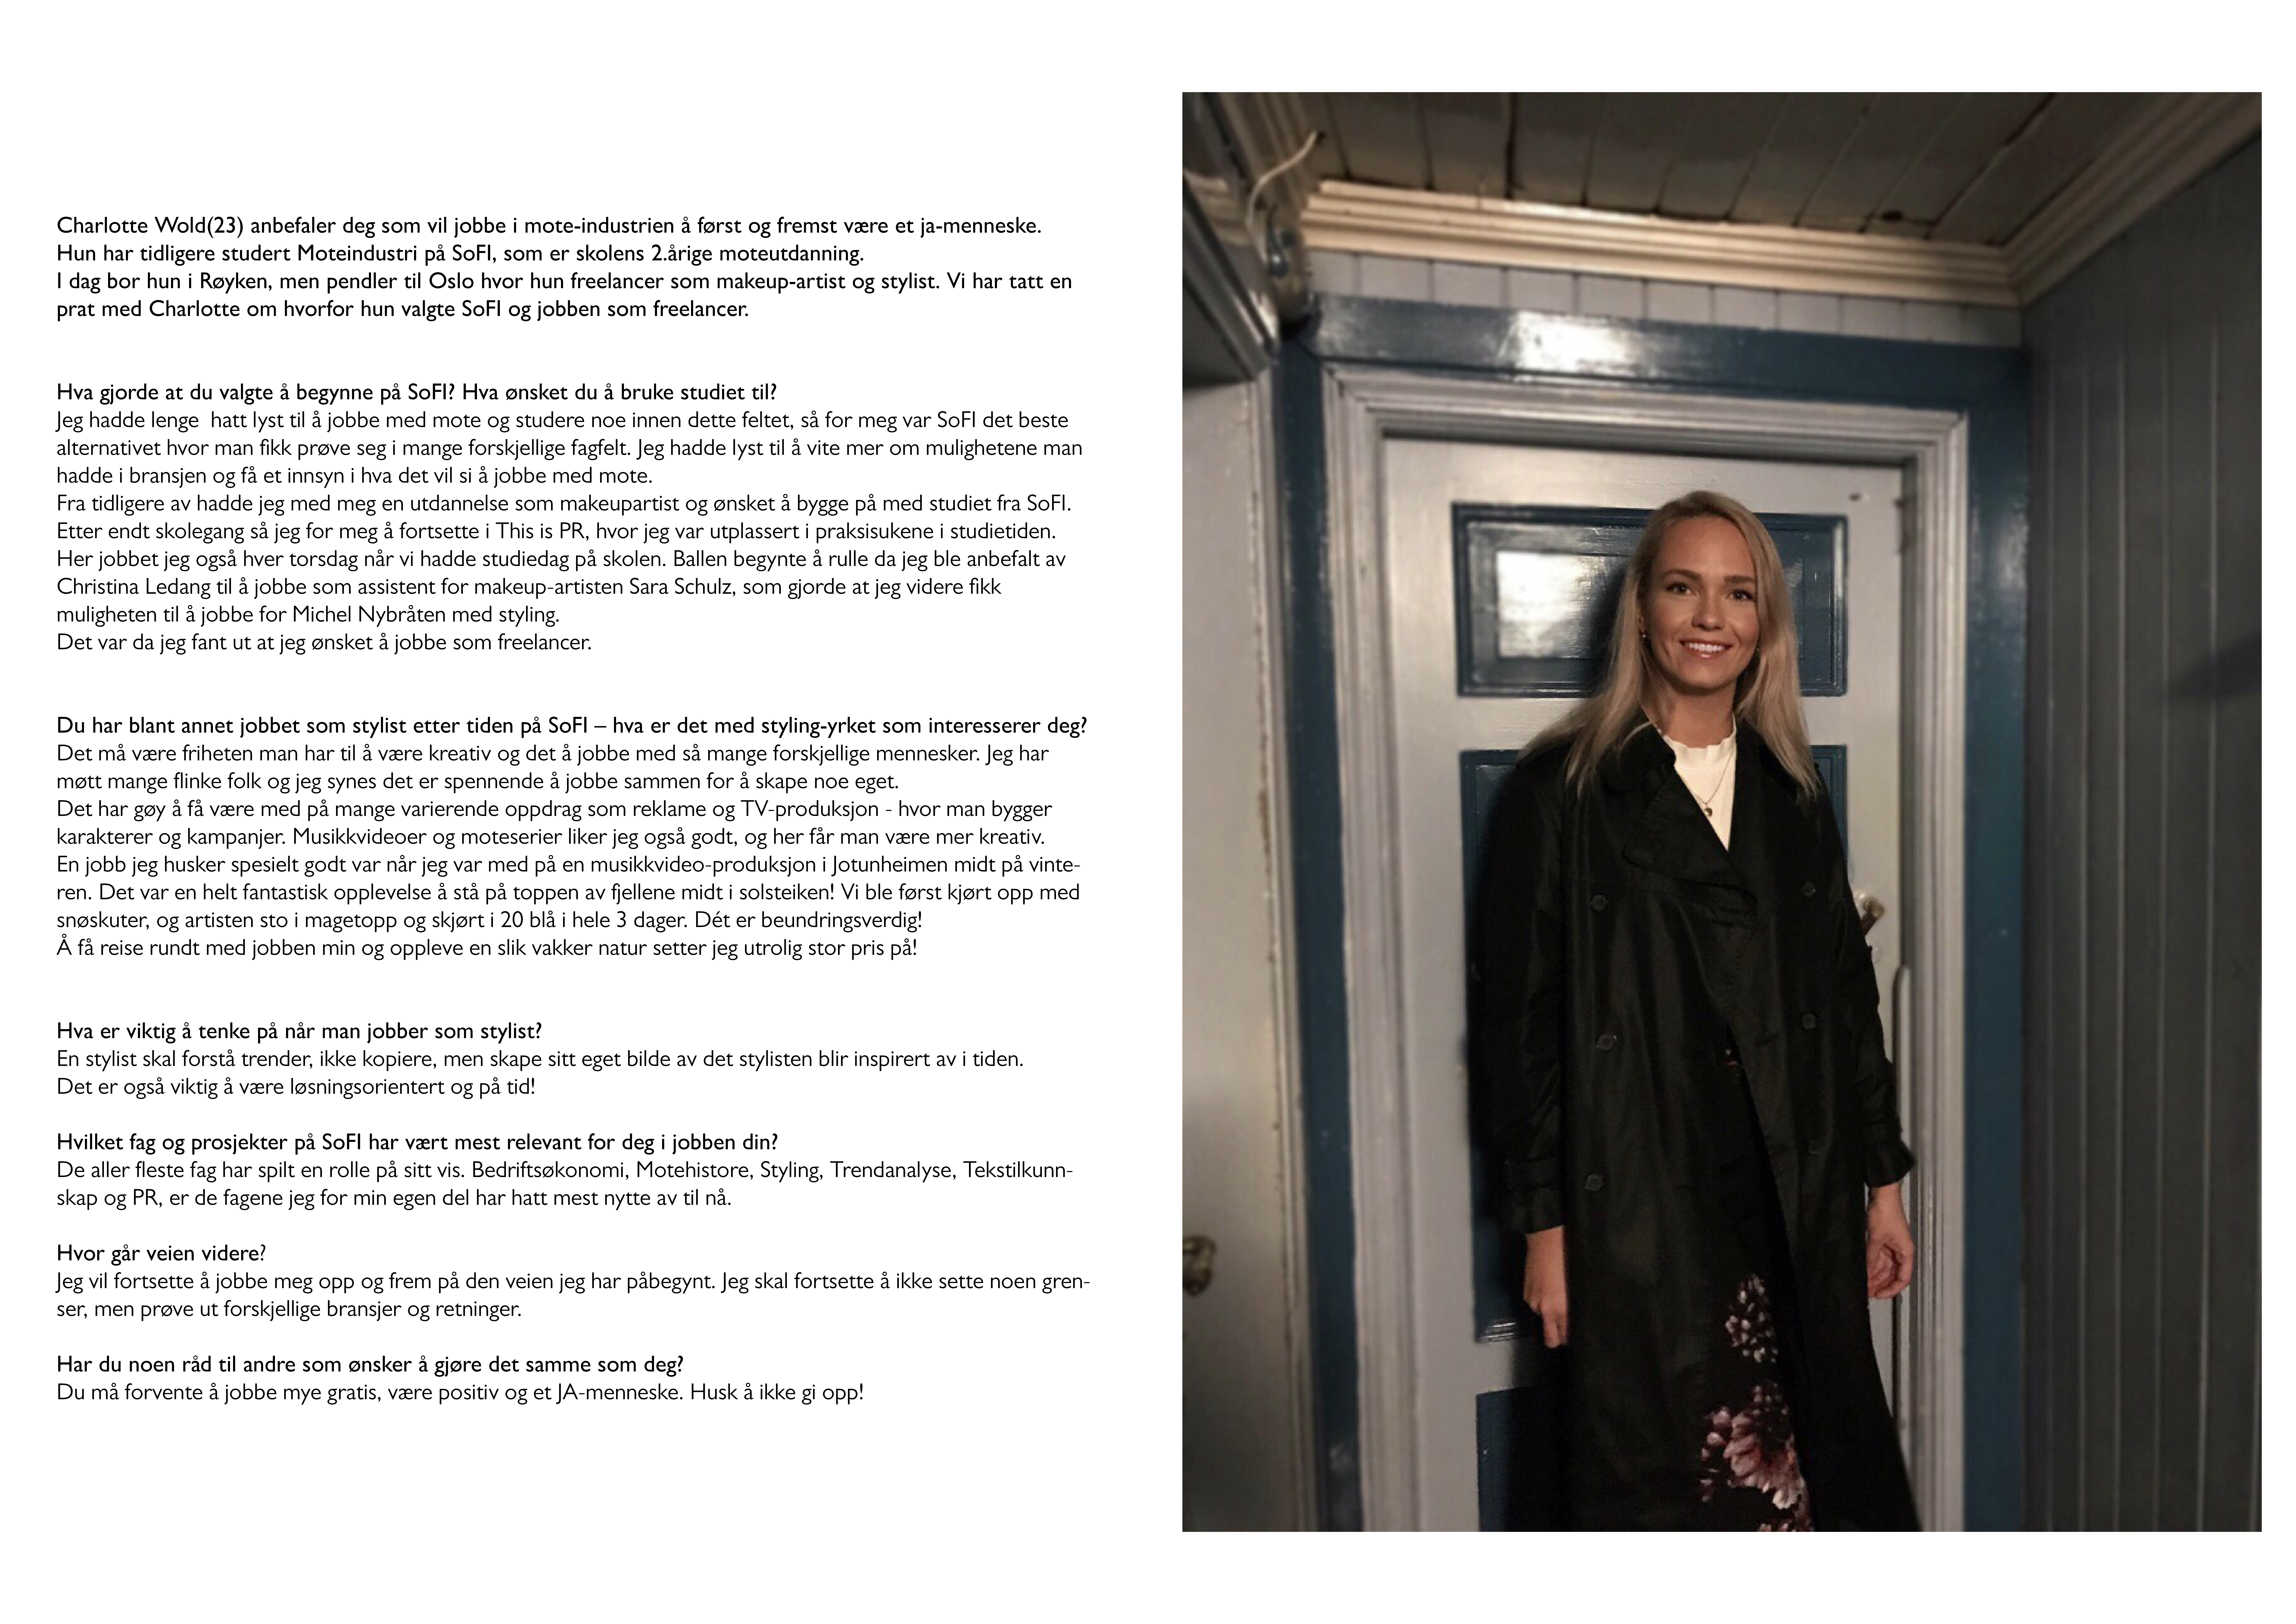 SoFI - School of Fashion Industry - Tidligere Student: Charlotte Wold.